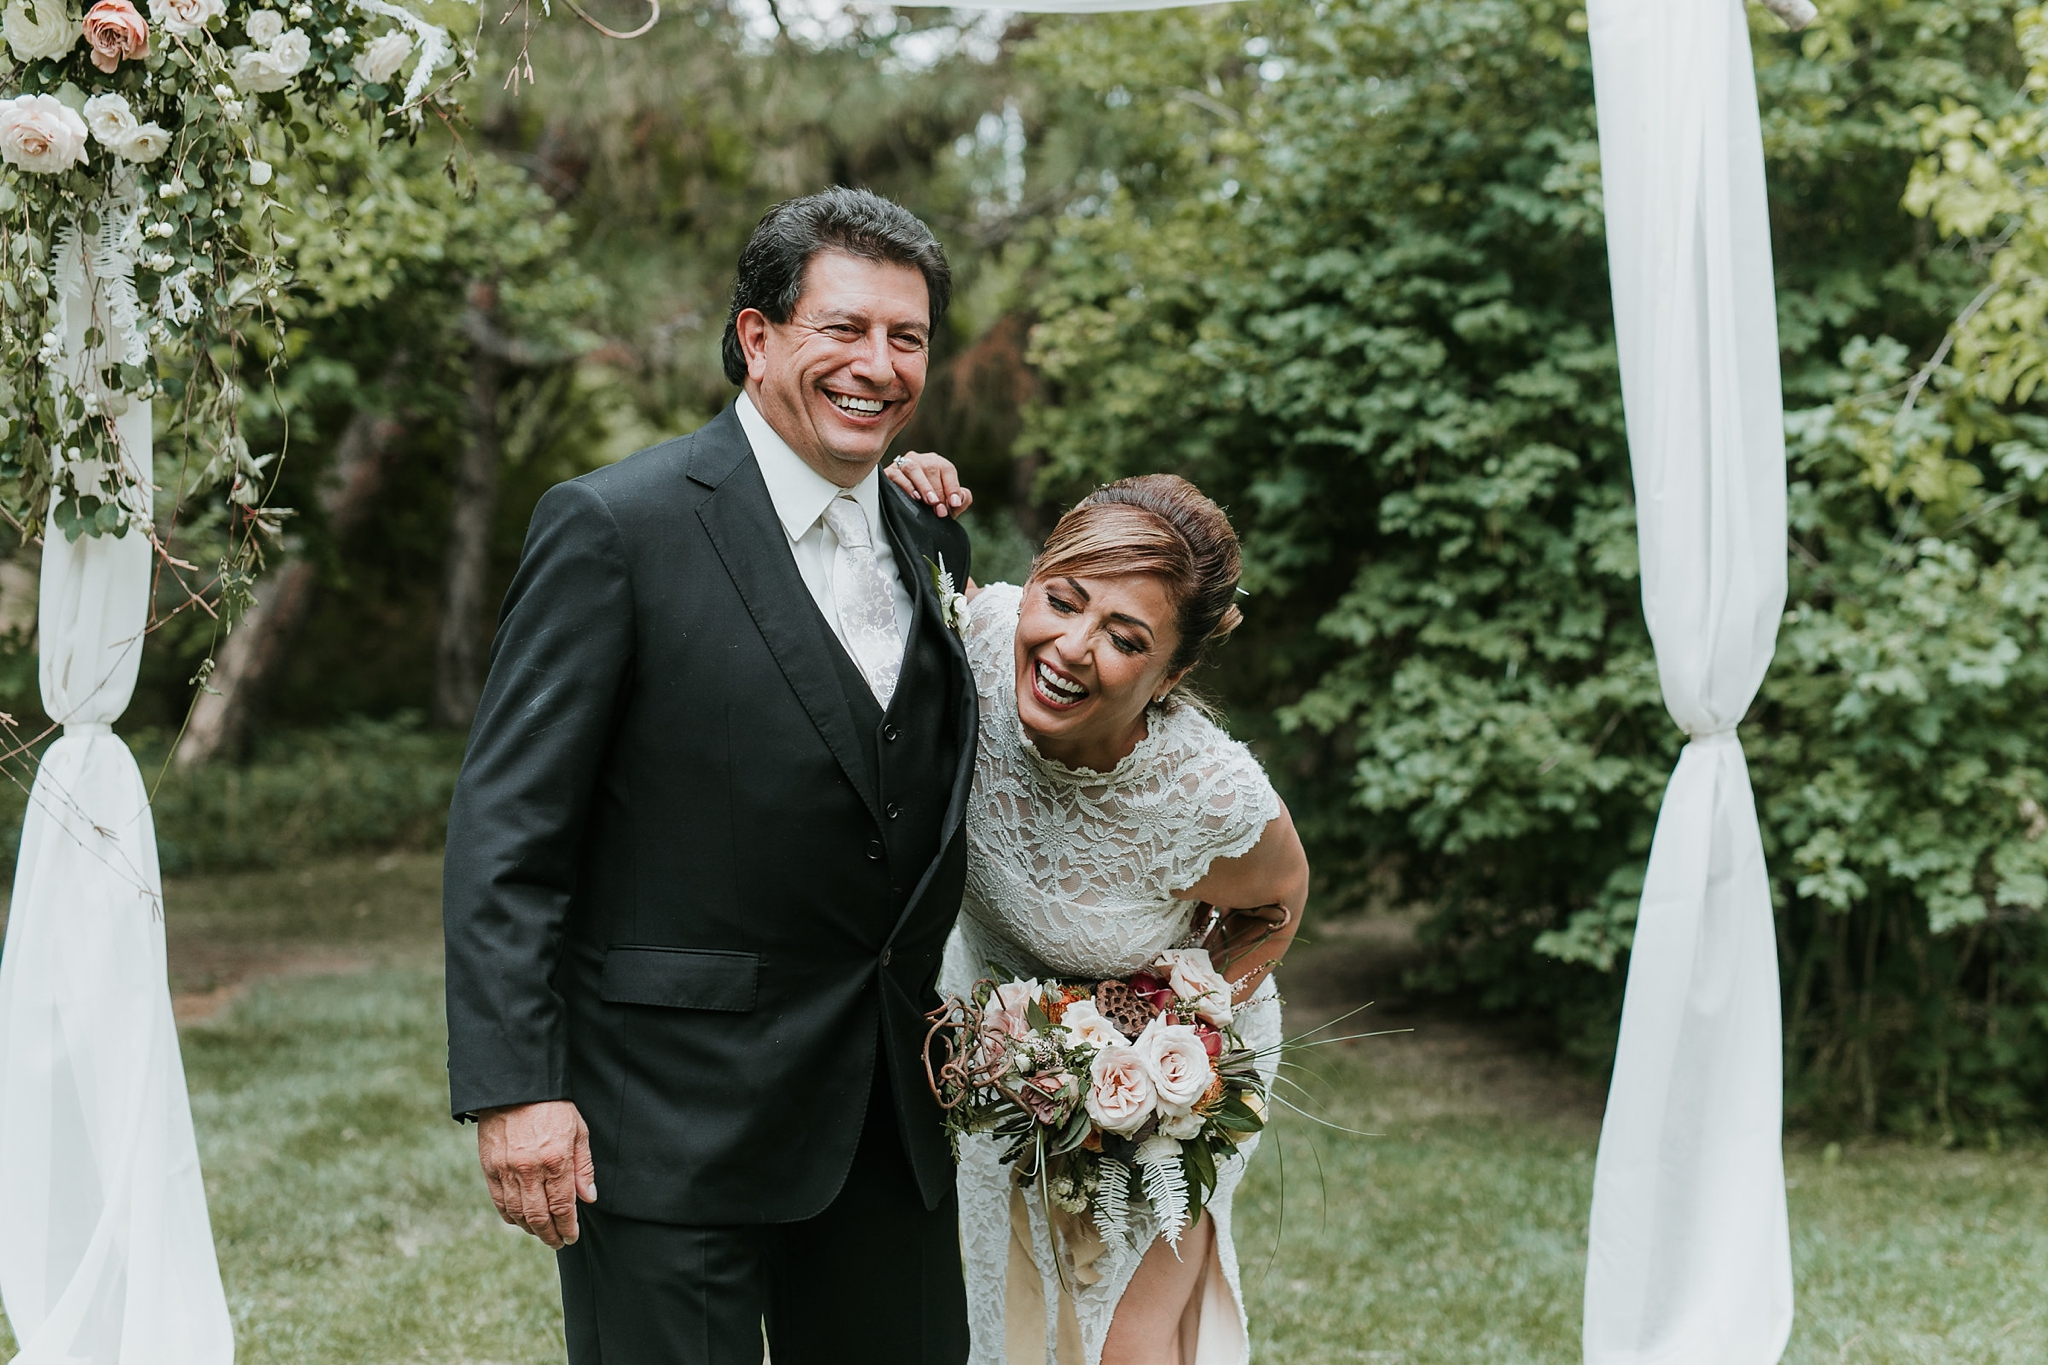 Alicia+lucia+photography+-+albuquerque+wedding+photographer+-+santa+fe+wedding+photography+-+new+mexico+wedding+photographer+-+new+mexico+wedding+-+wedding+makeup+-+makeup+artist+-+wedding+makeup+artist+-+bridal+makeup_0029.jpg